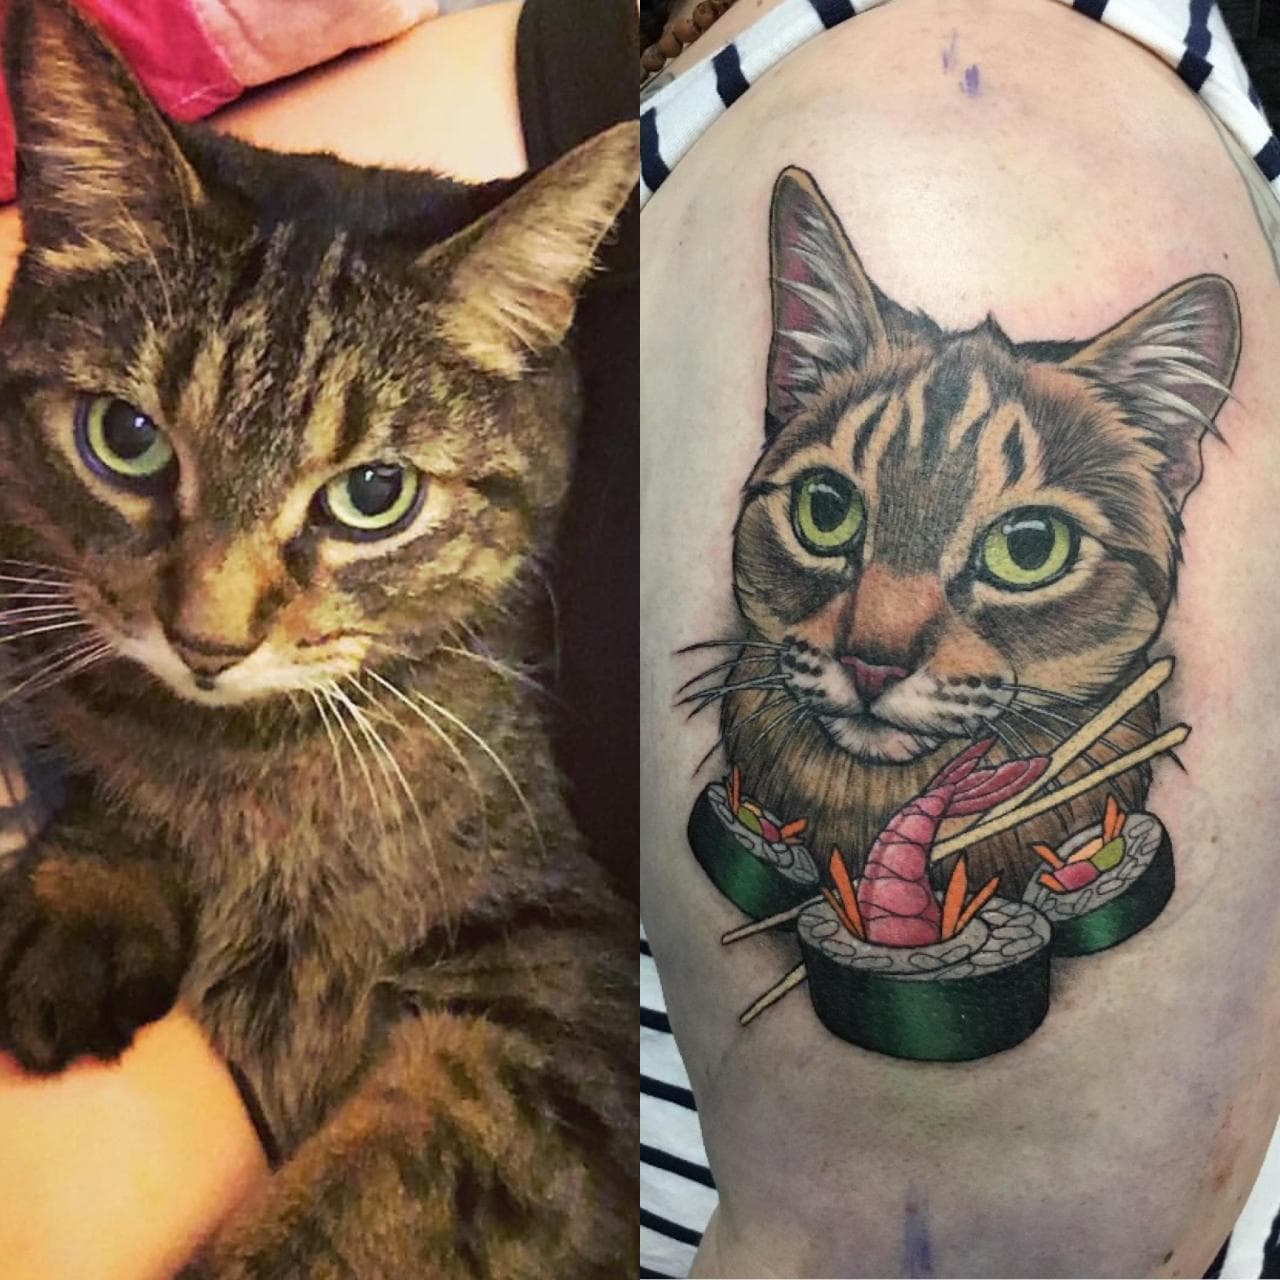 Got a tribute to our late matriarch, Sushi. Artist nailed it! (Eastern Ontario peeps, check out Sarah at Astral Tiger Studios, she is a beautiful person and a gifted artist.)